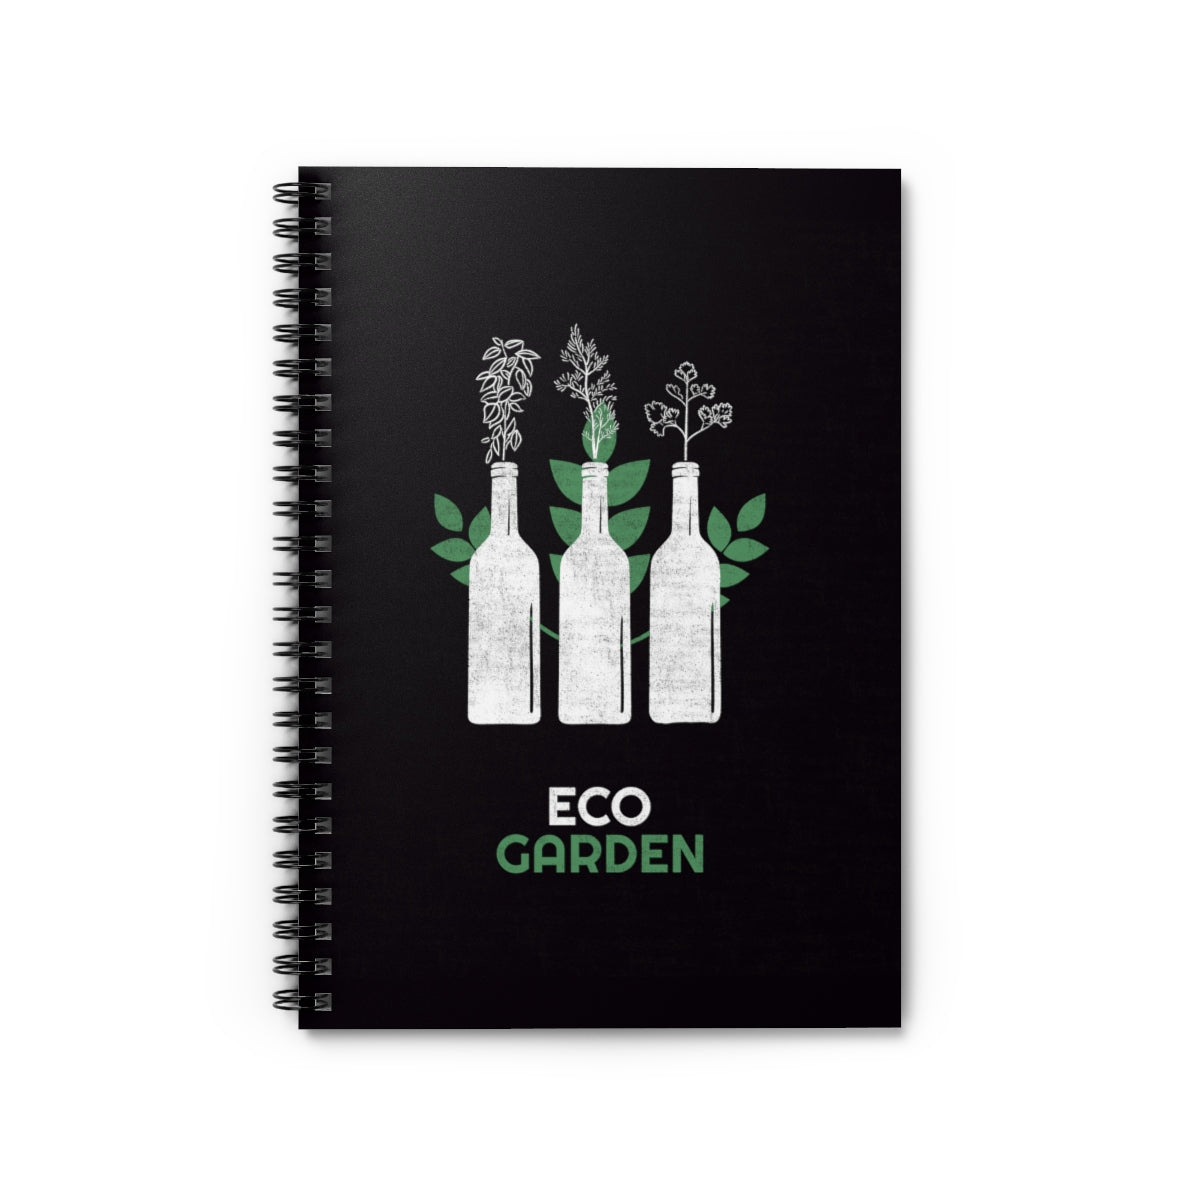 ECO GARDEN  Notebook - Ruled Line